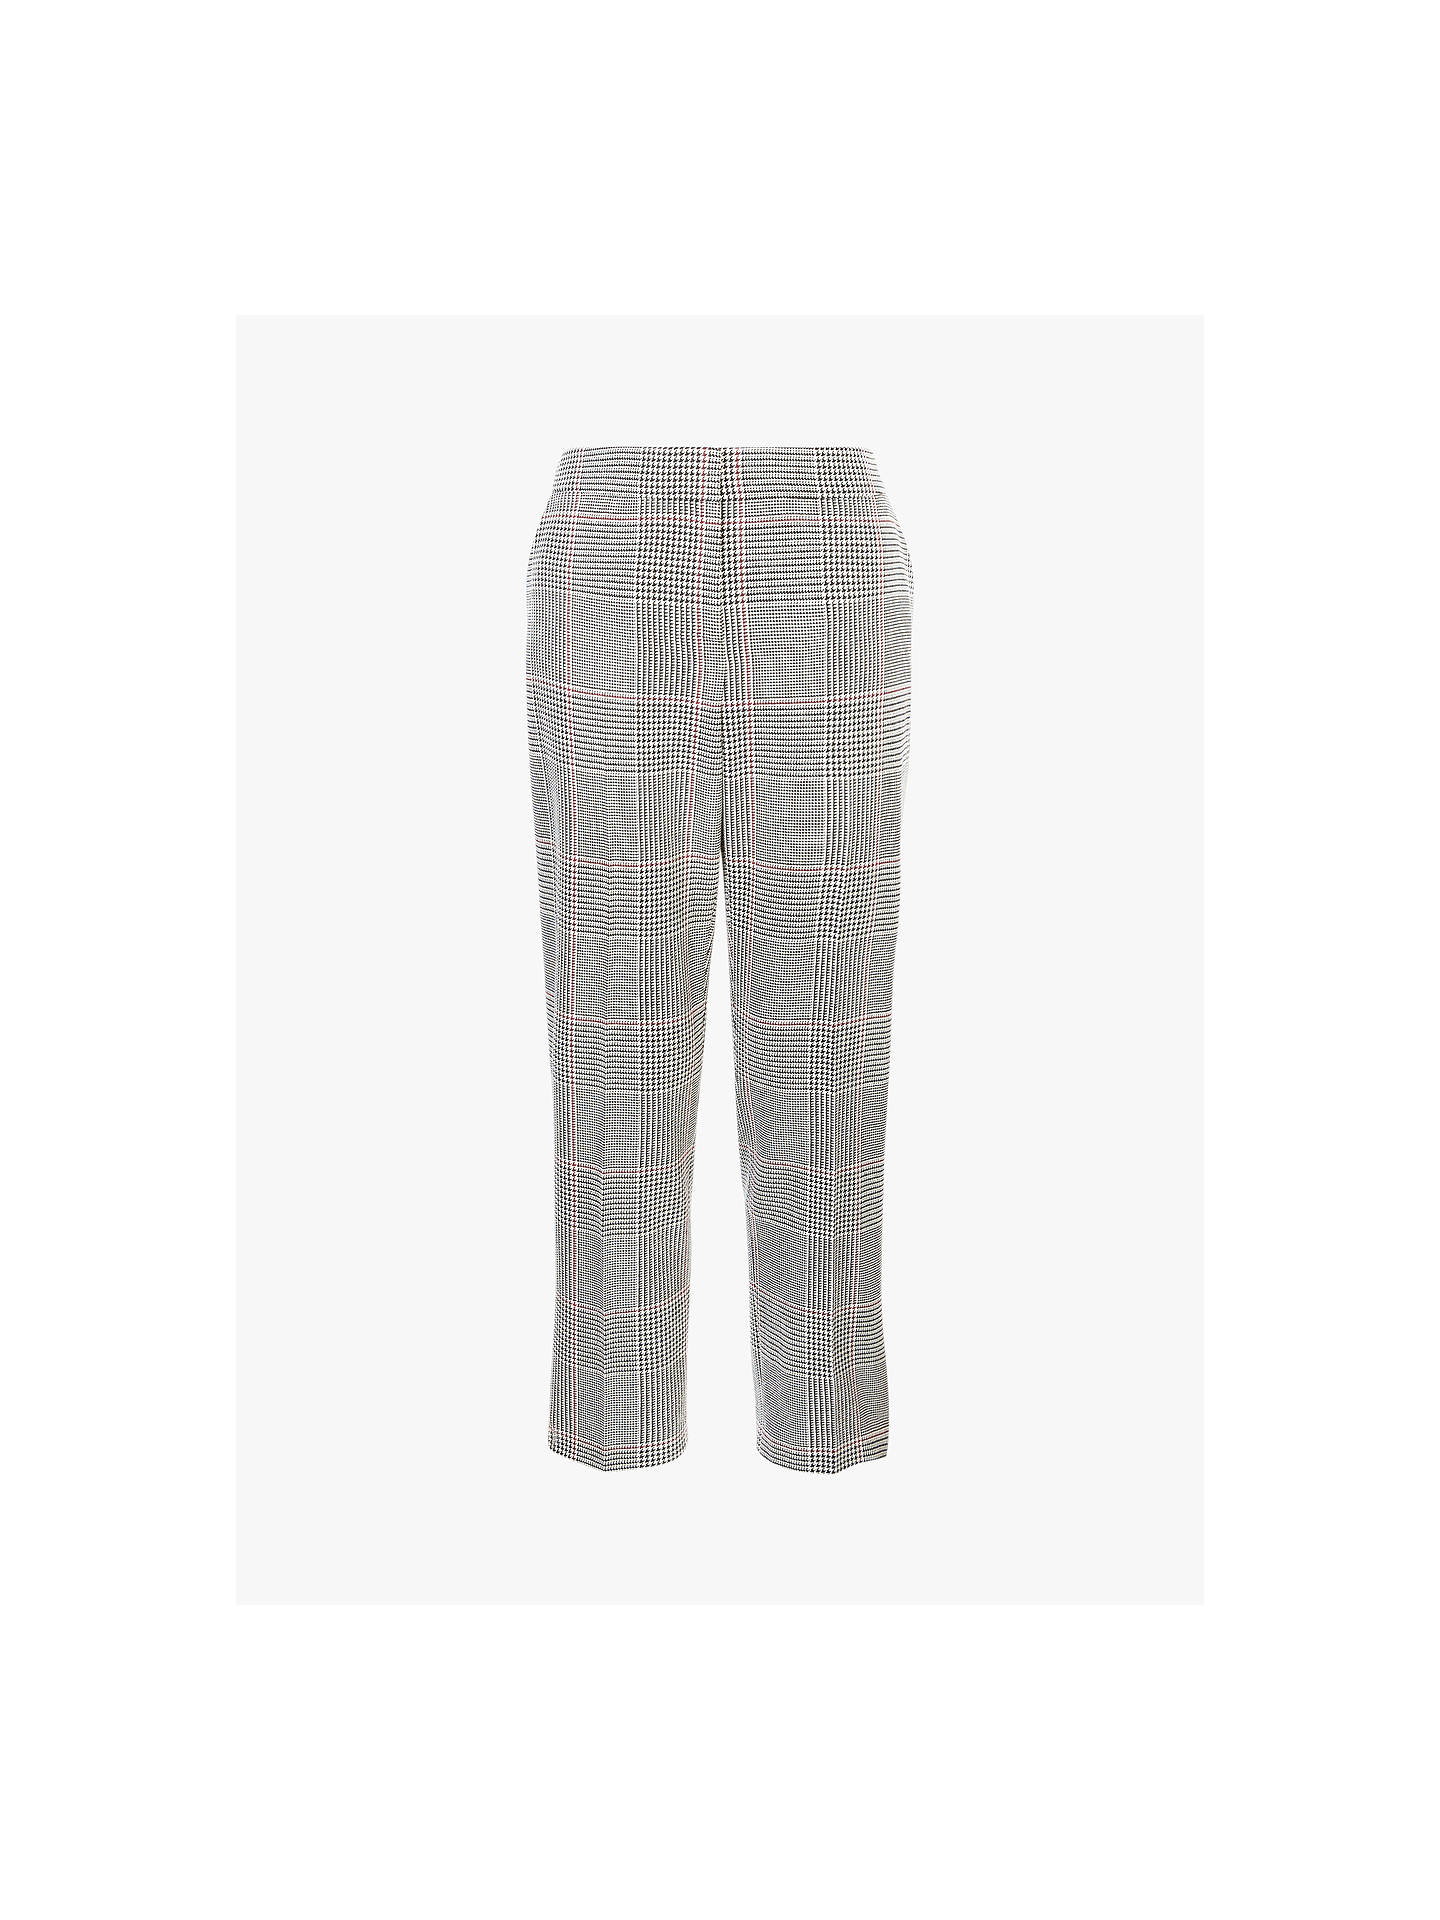 Buy Hobbs Anthea Trousers, Black/Ivory, 18 Online at johnlewis.com